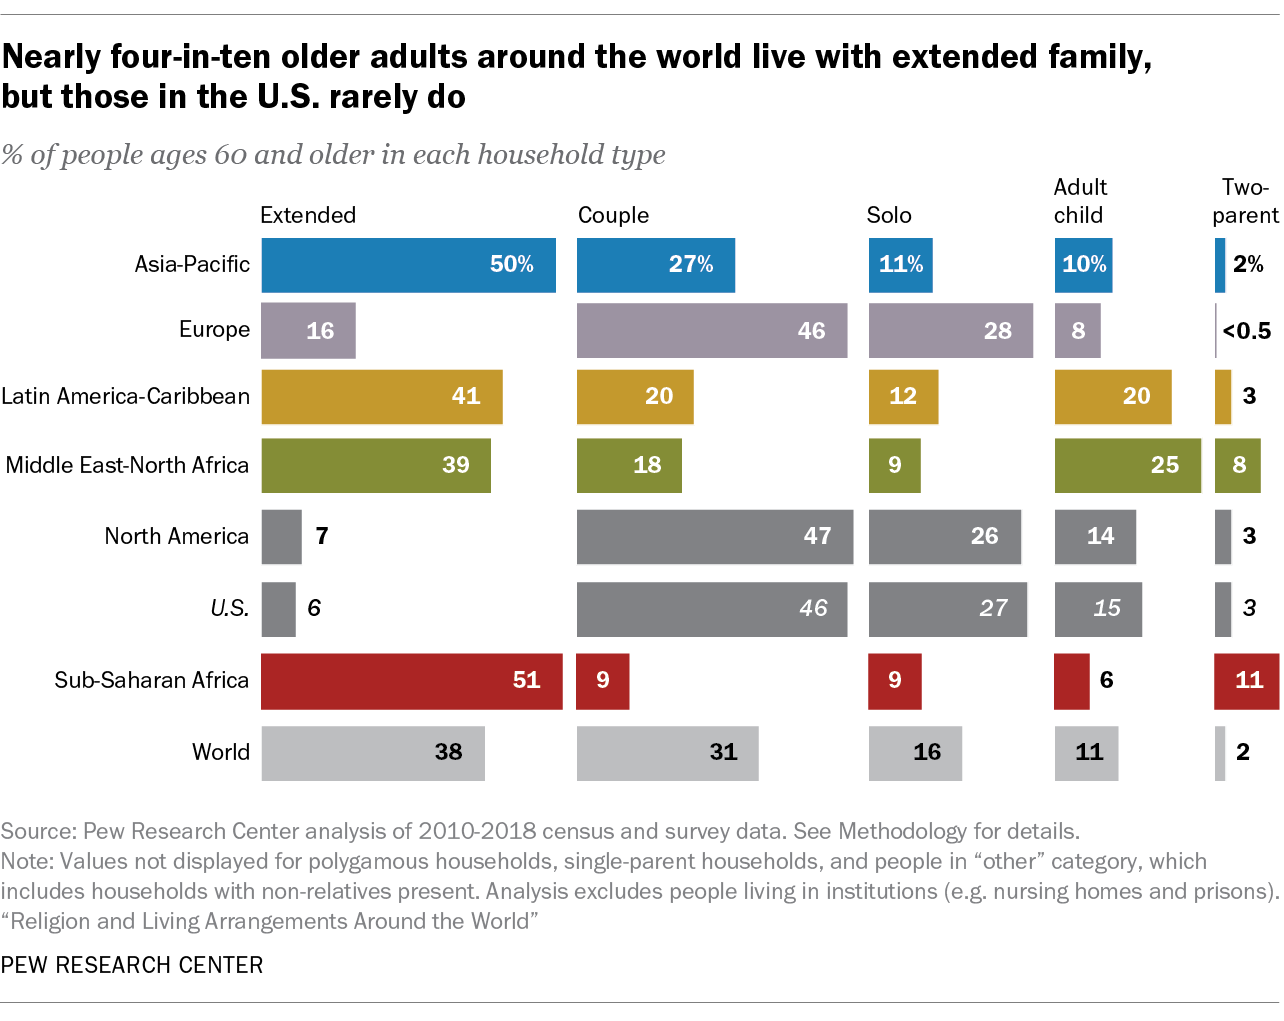 Nearly four-in-ten older adults around the world live with extended family, but those in the U.S. rarely do